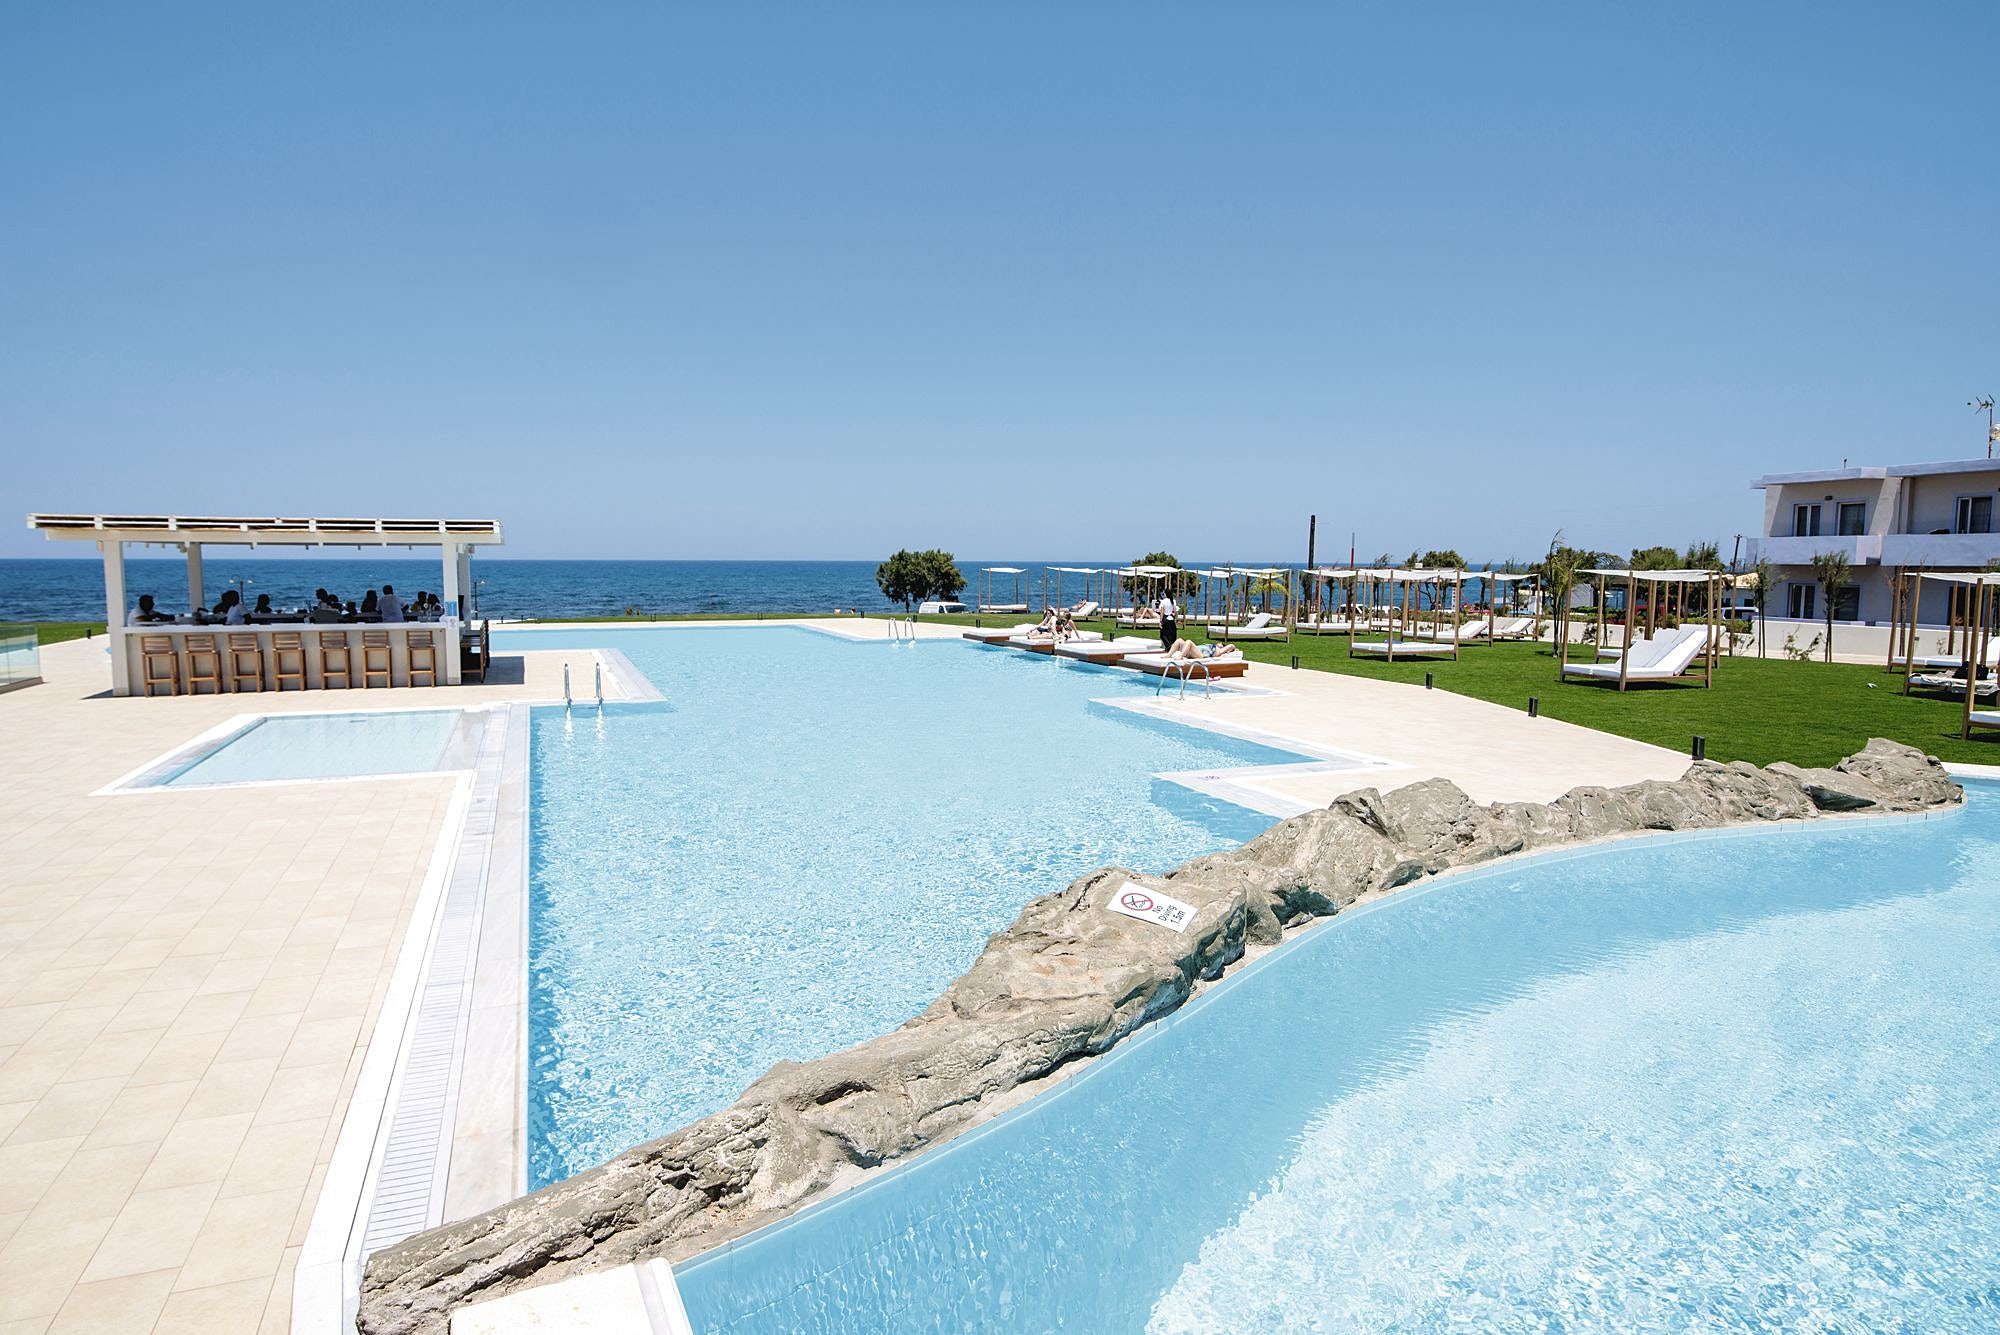 Insula Alba Resort & Spa